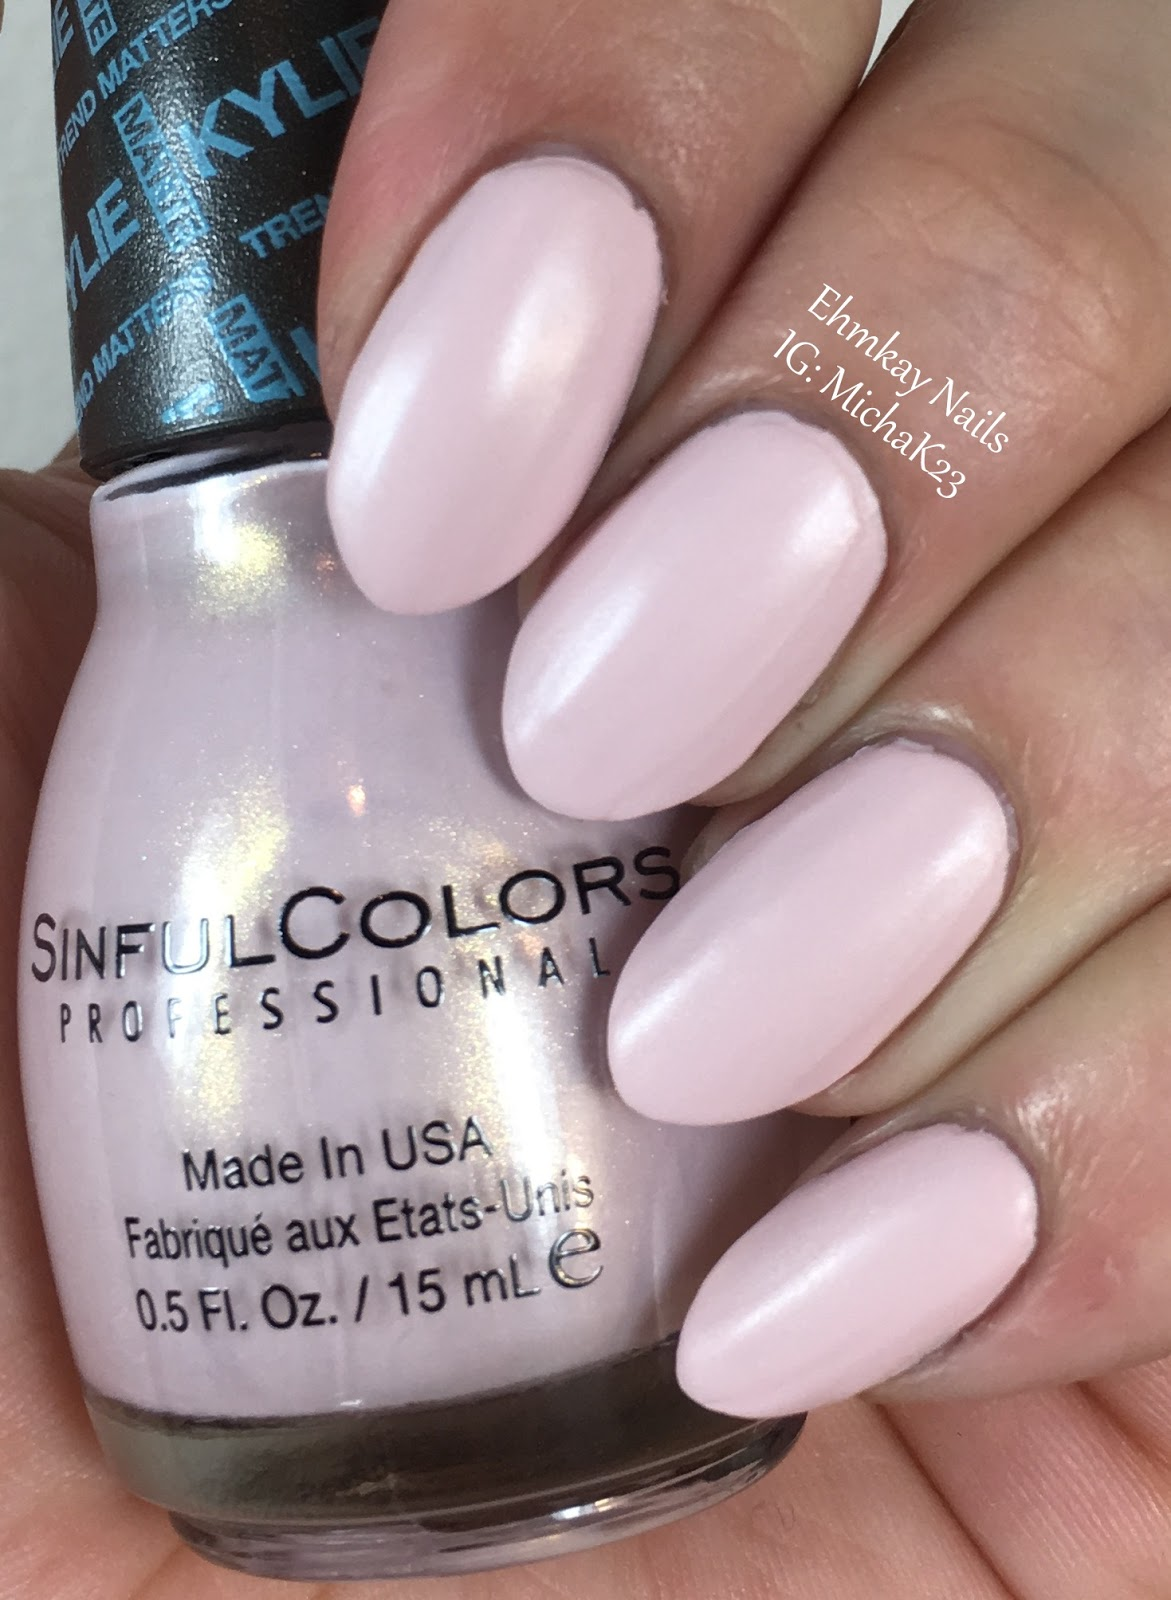 ehmkay nails: Sinful Colors Kylie Jenner Trend Matters Pure Satin ...